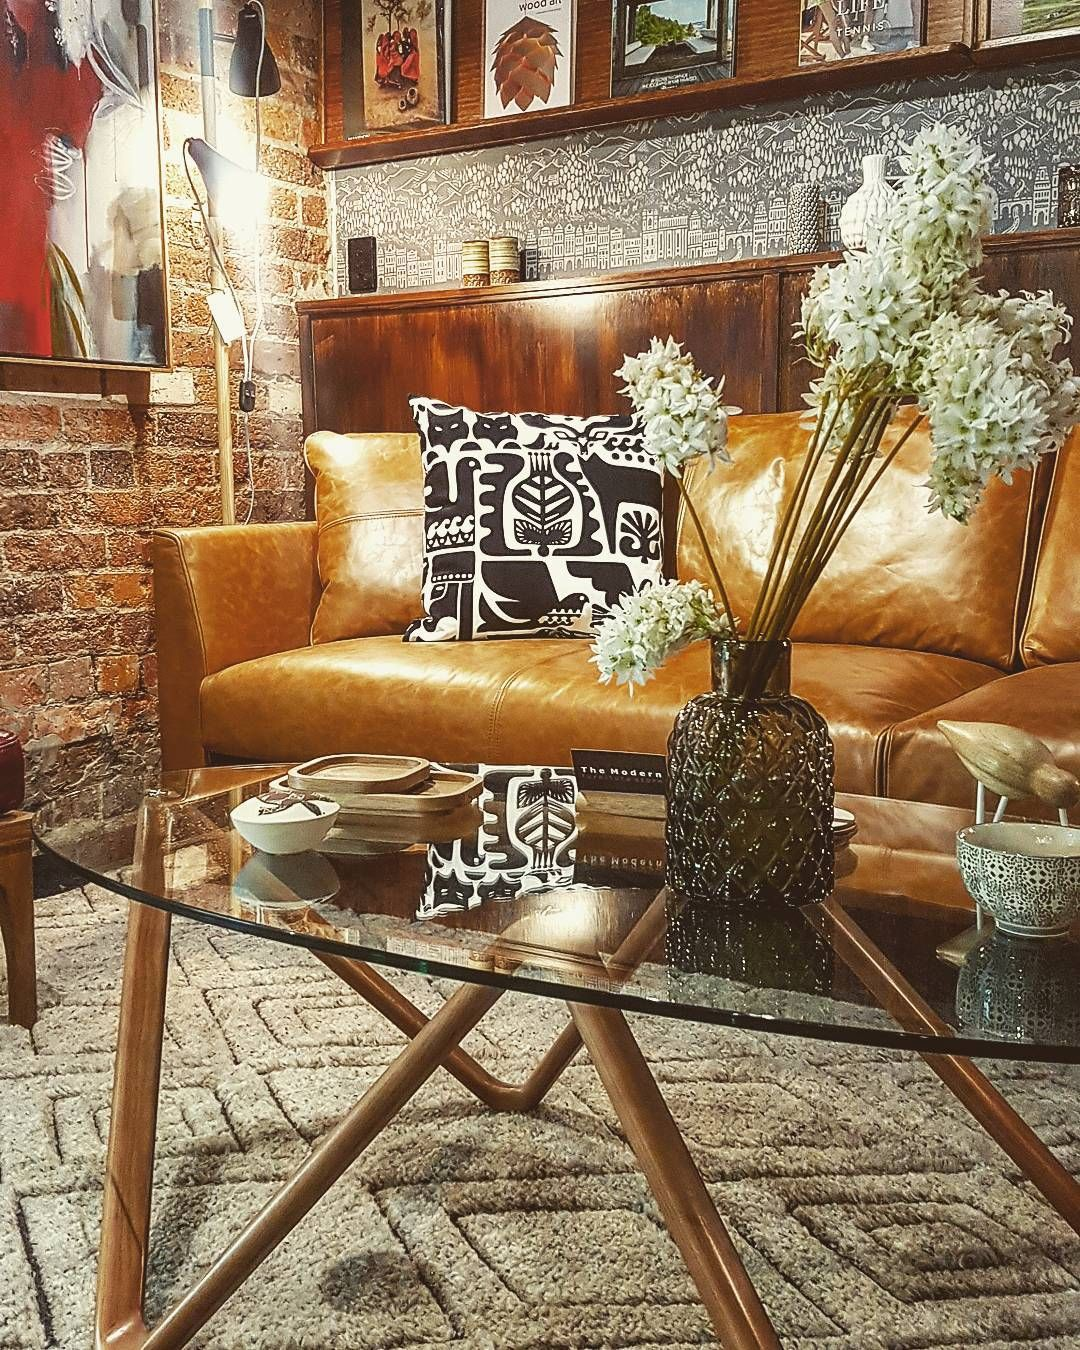 The modern furniture store on instagram narvik 4 seater sofa in tan leather foreversofa armadilloandco marimekkoaustralia